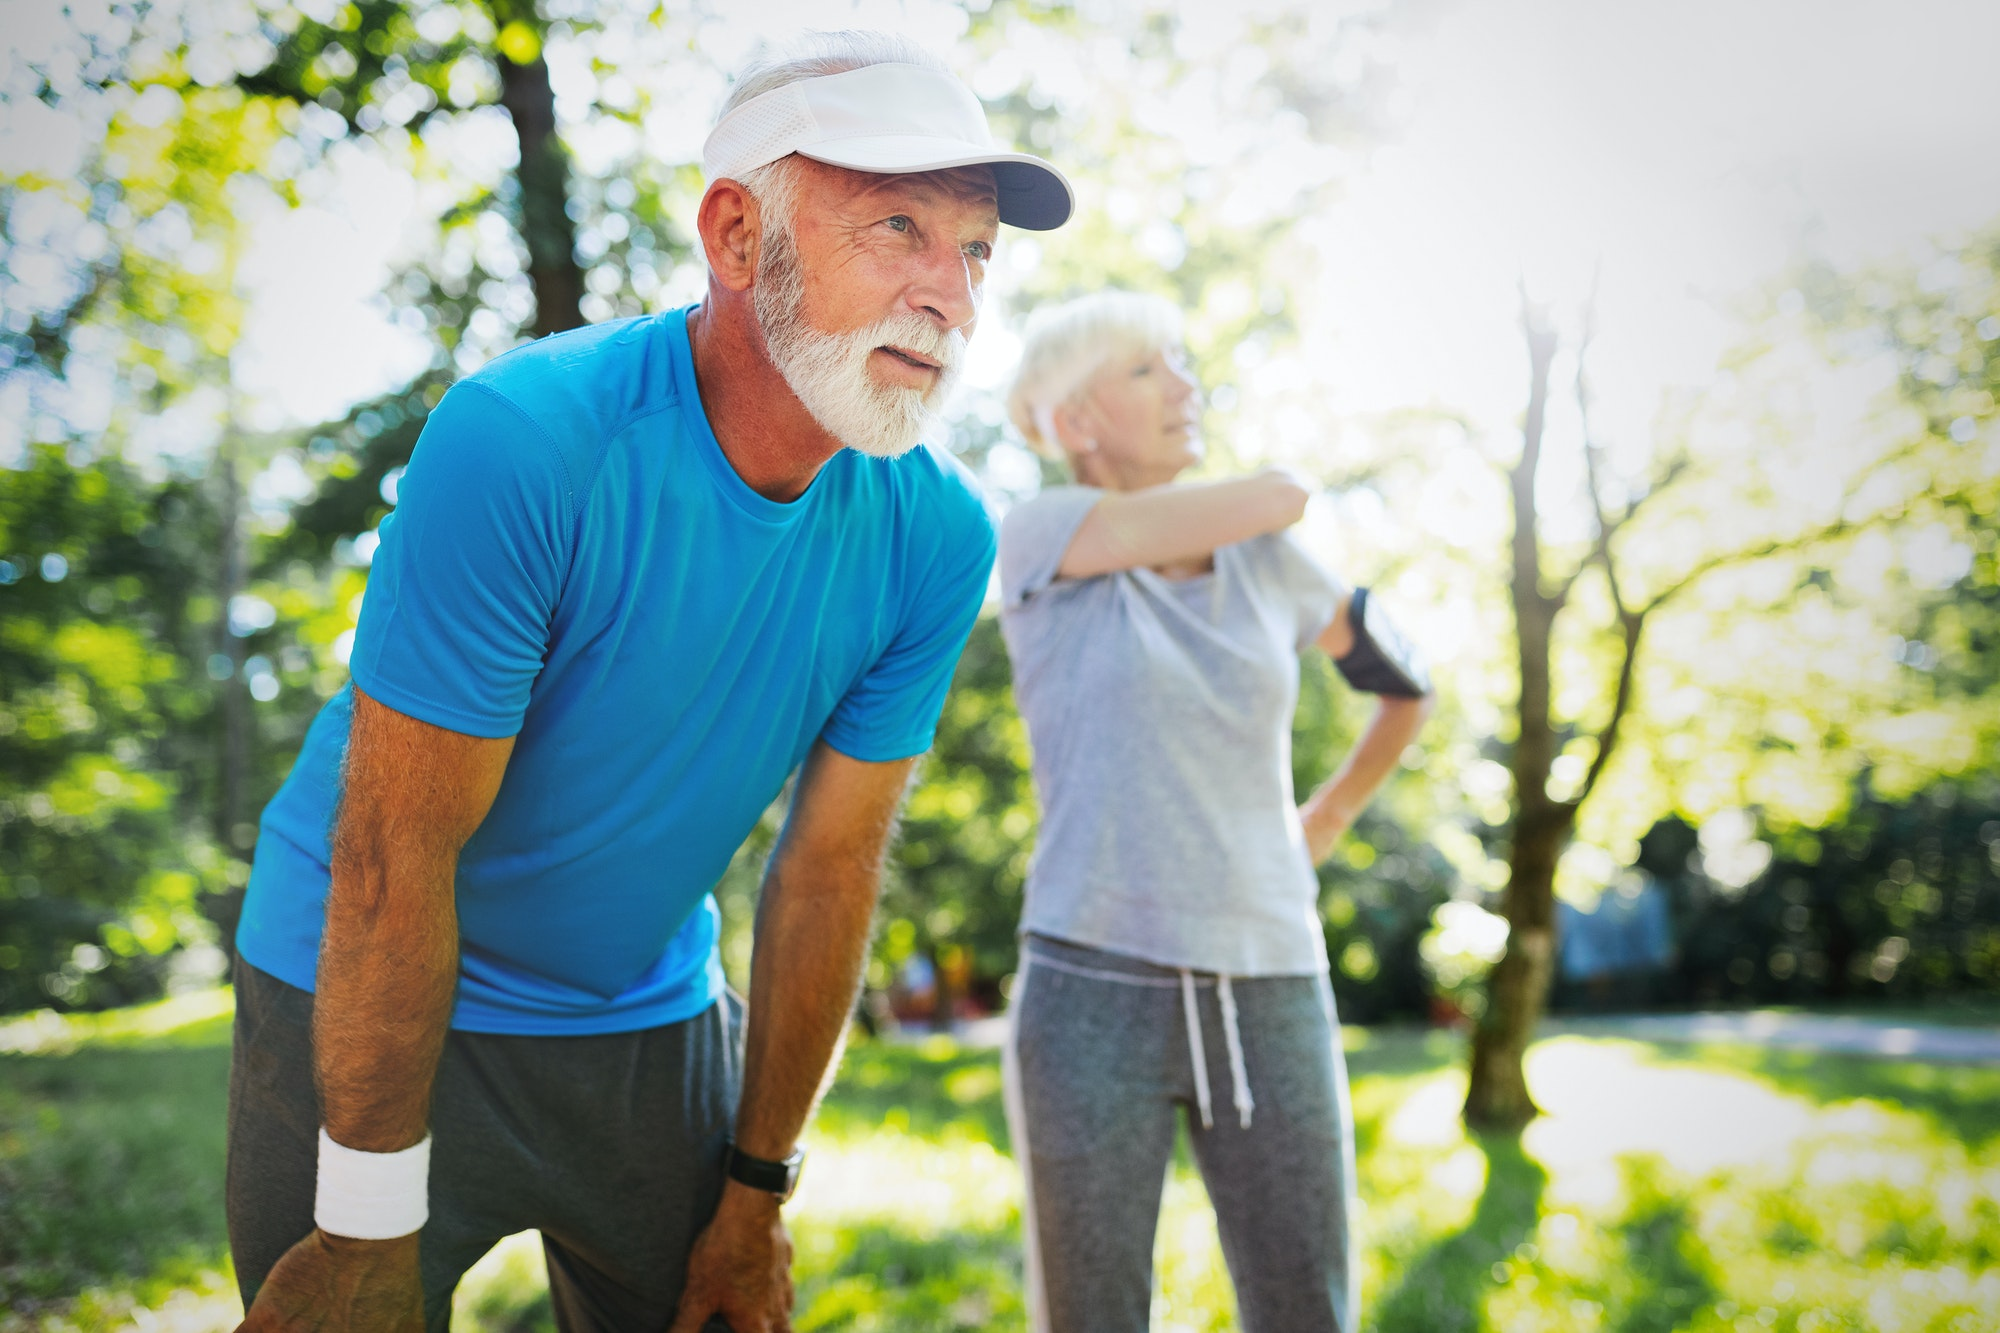 Mature couple jogging and running outdoors in nature